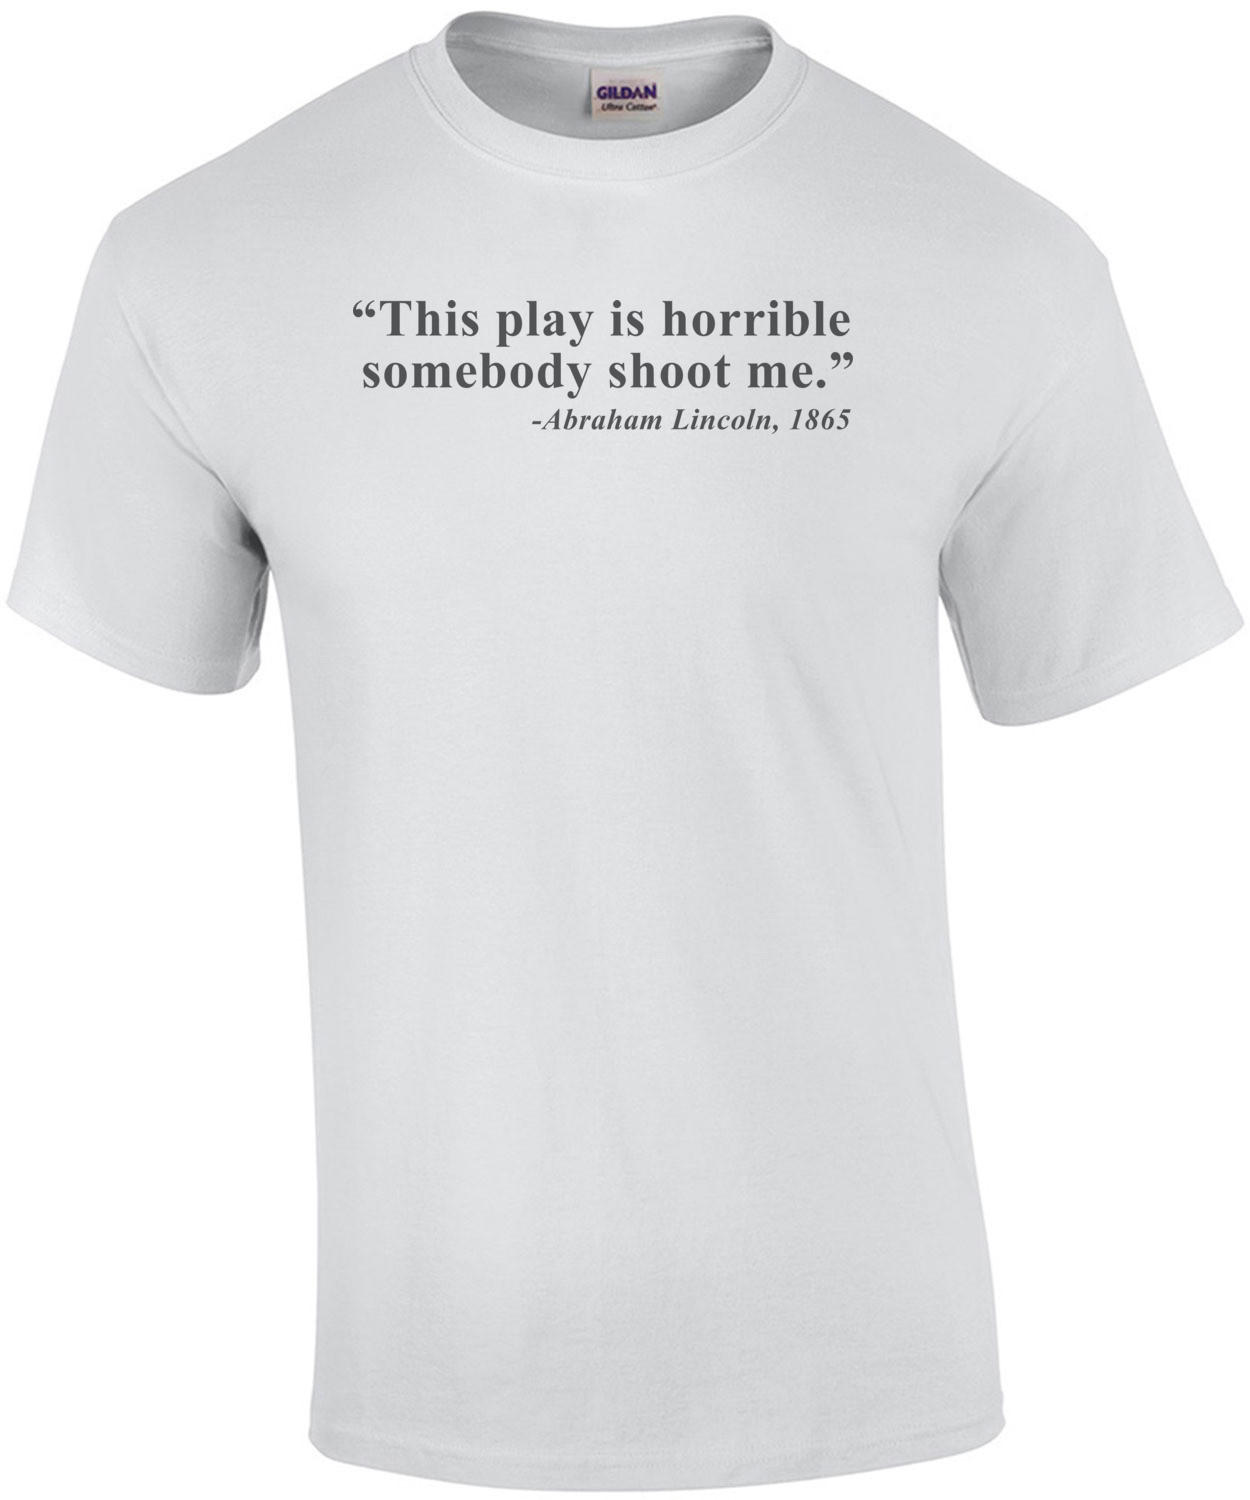 This Play is Horrible - Lincoln Quote Tee